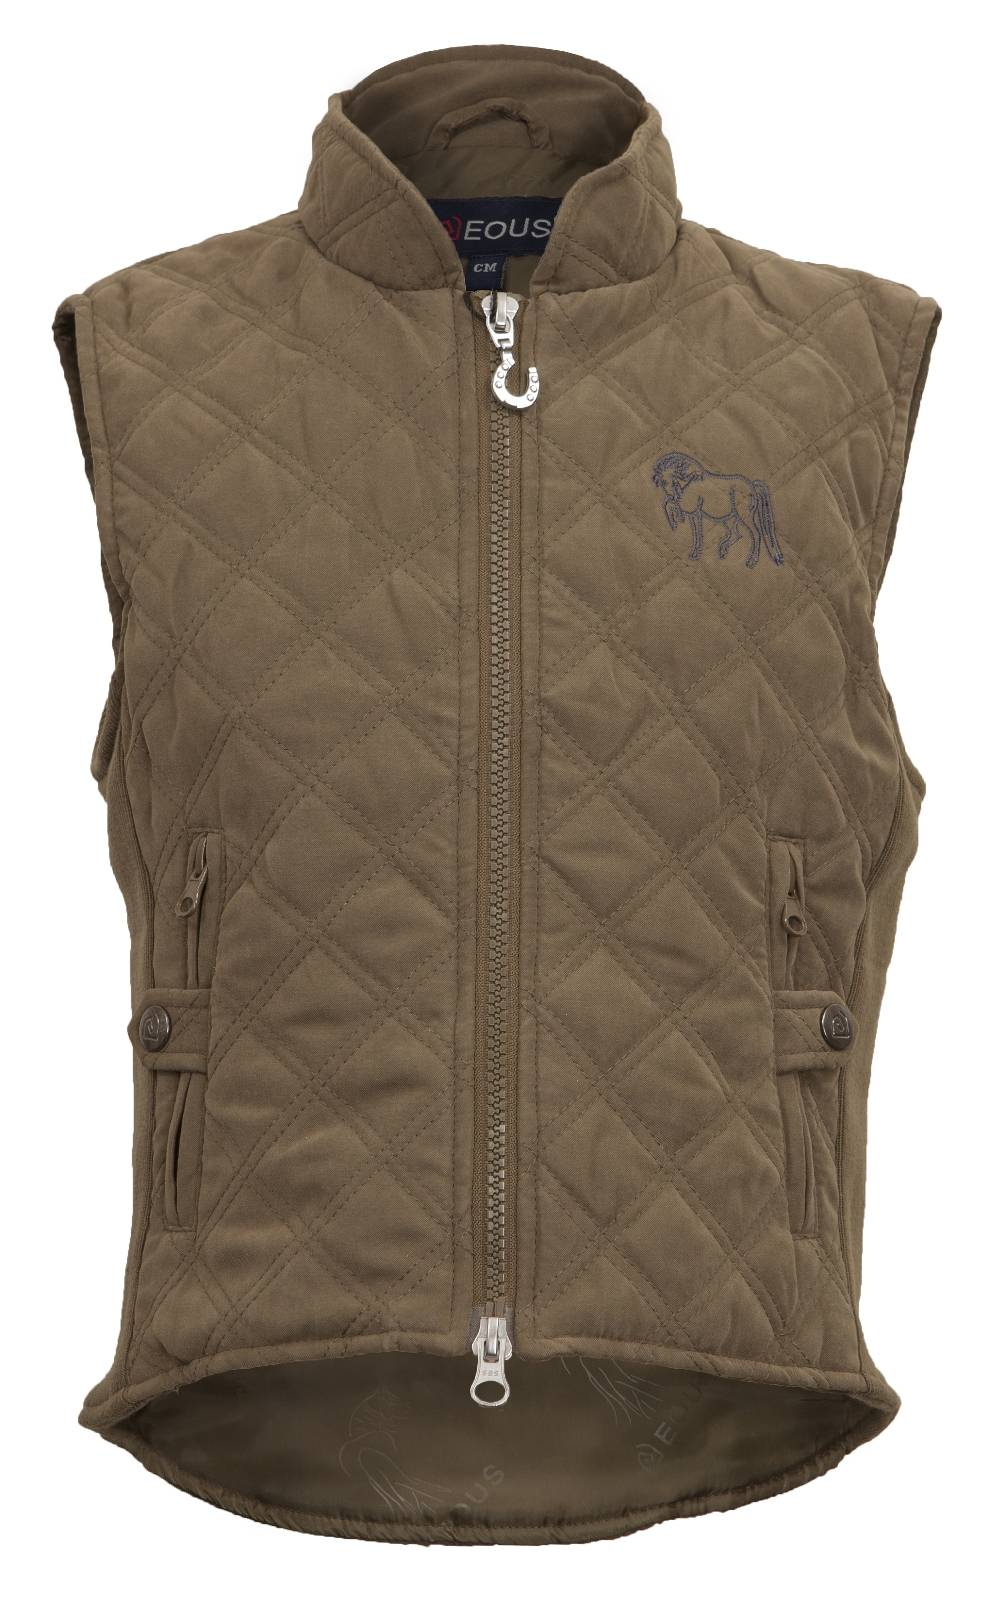 EOUS Verona Kids Riding Vest